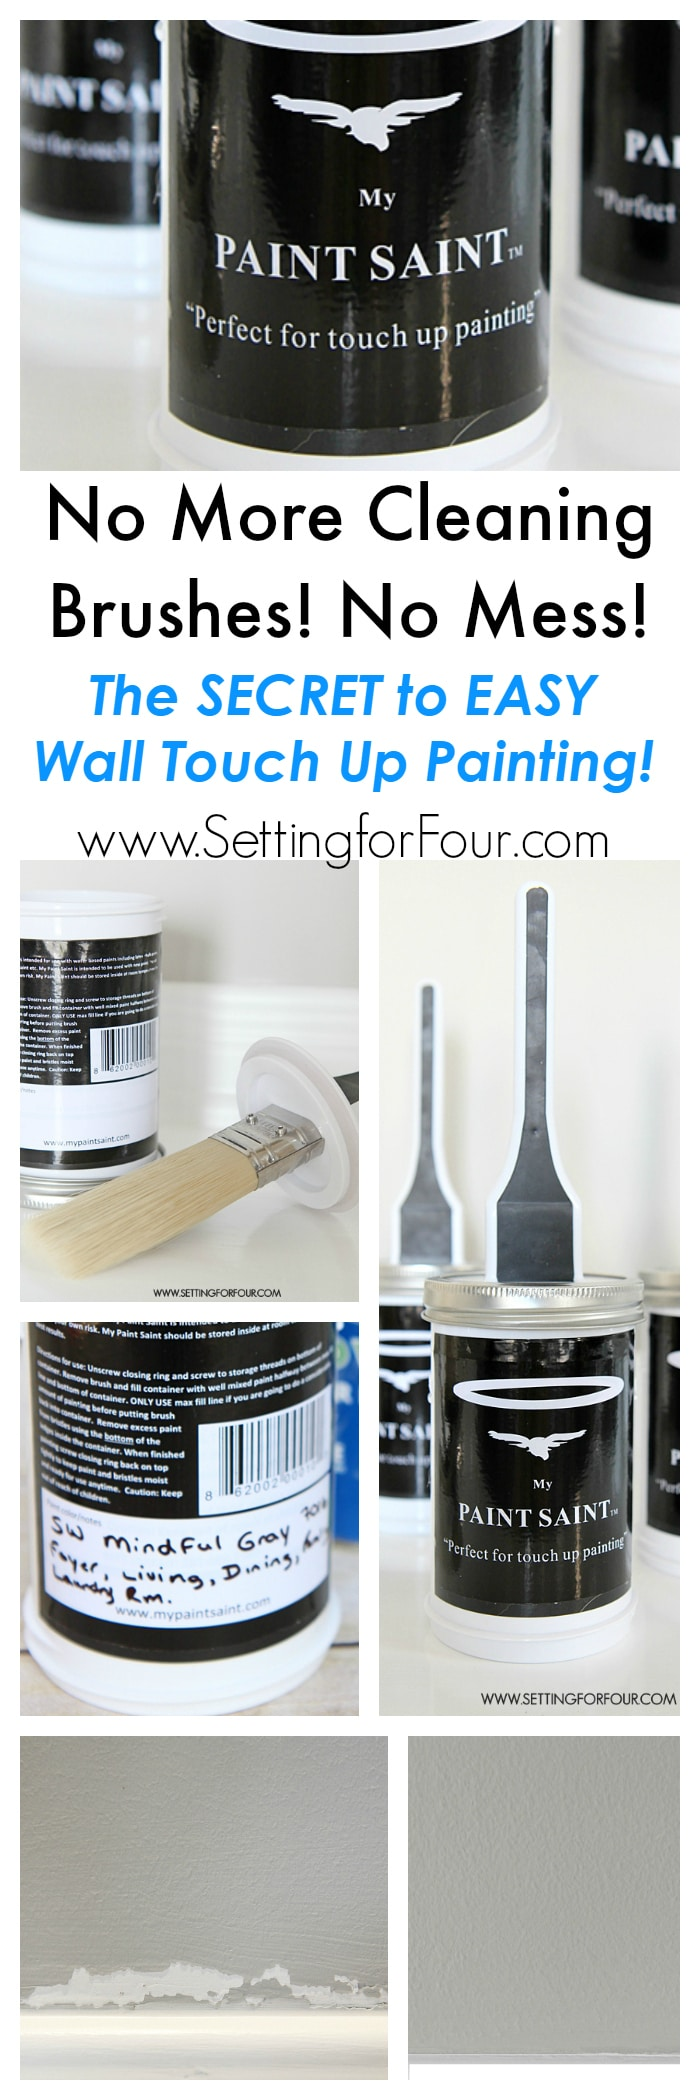 How to touch up paint walls easily and quickly! www.settingforfour.com